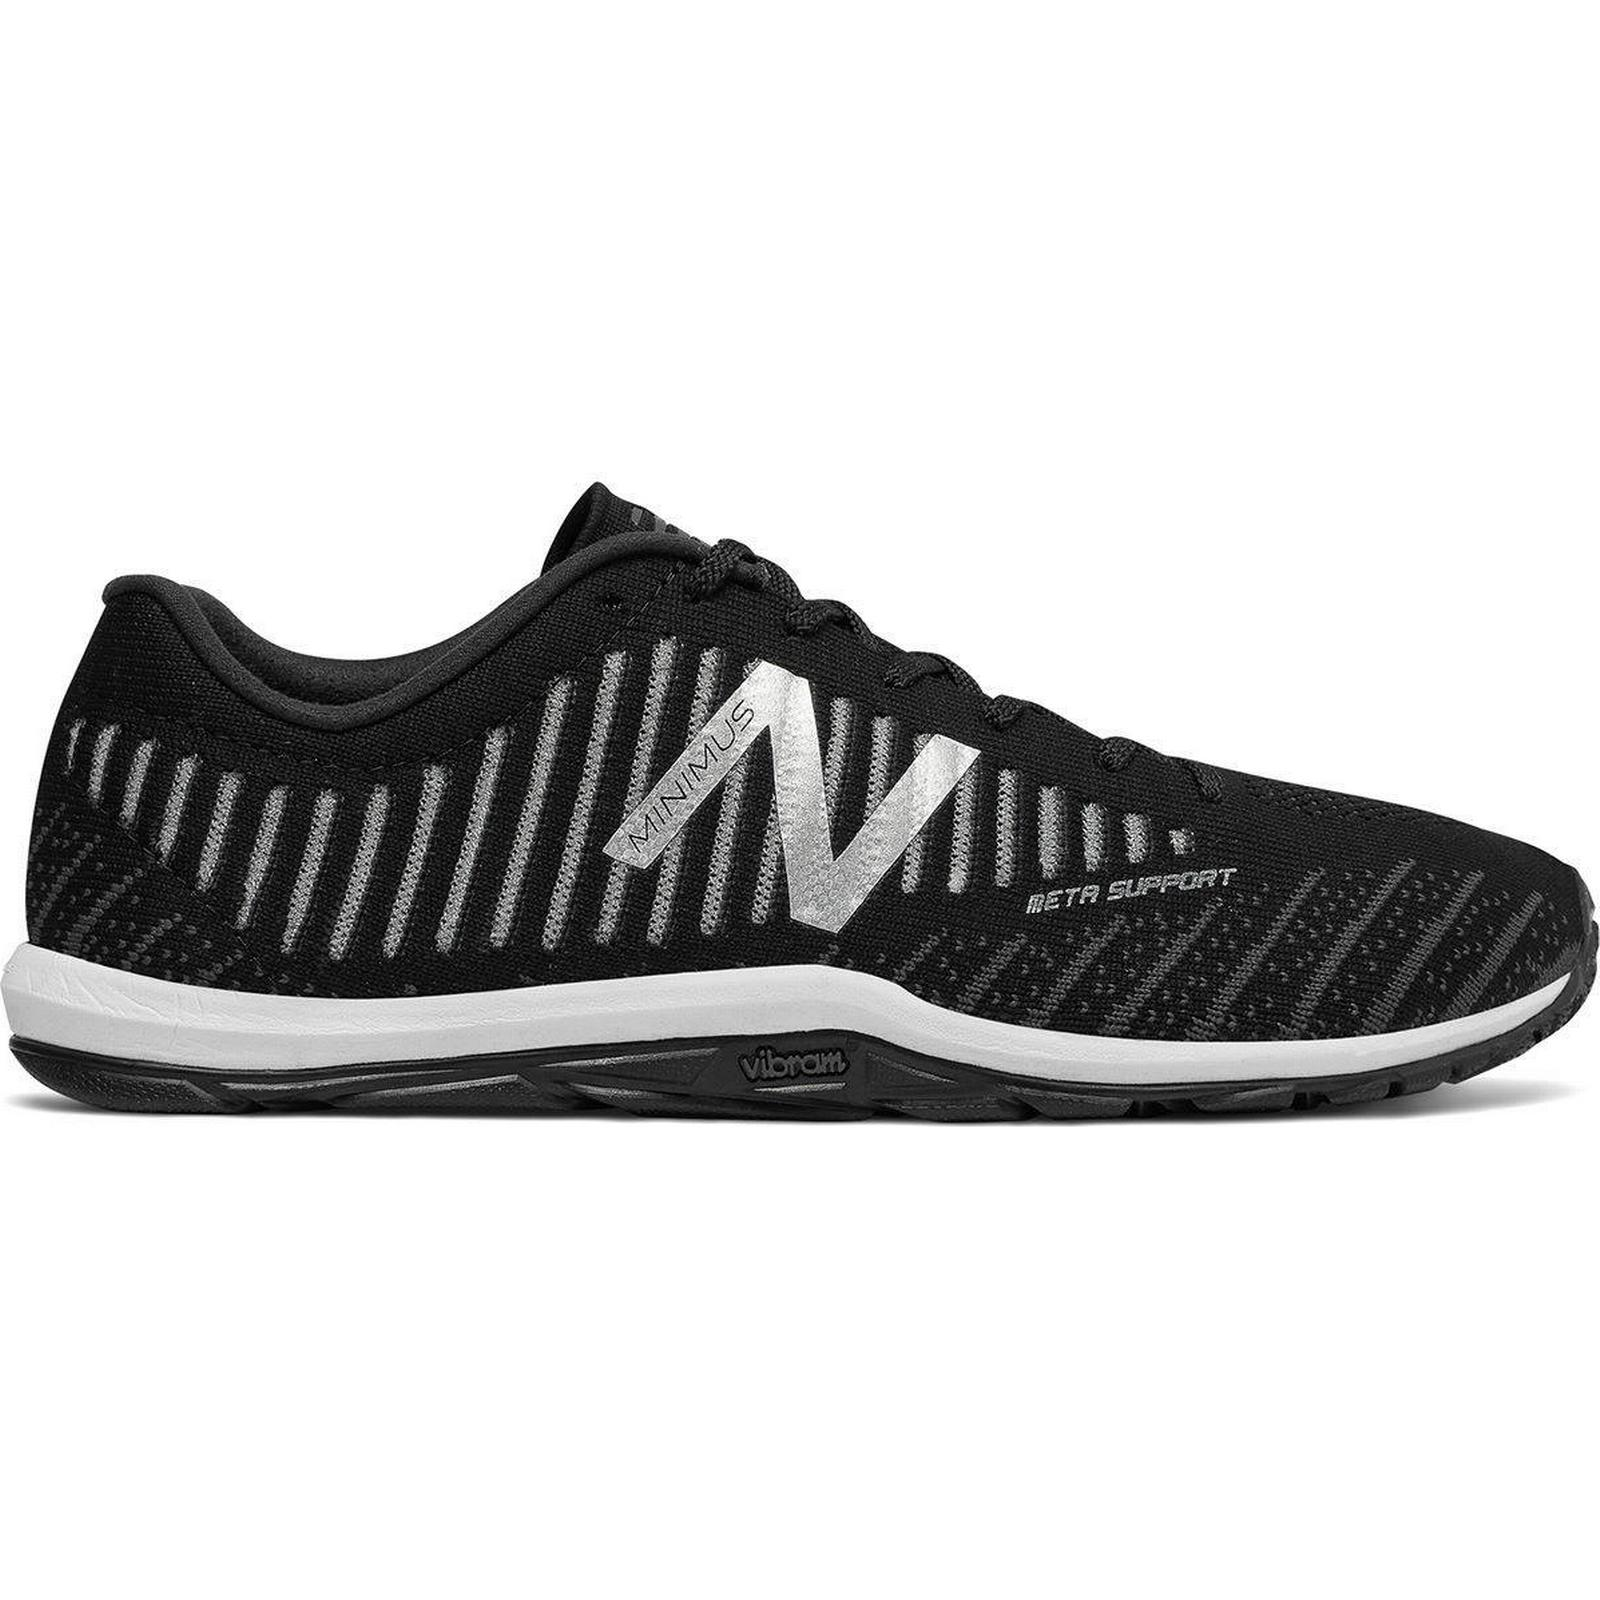 Wiggle Online Cycle Shop Shoes New Balance MX20 v7 Shoes Shop Running Shoes 3e7688